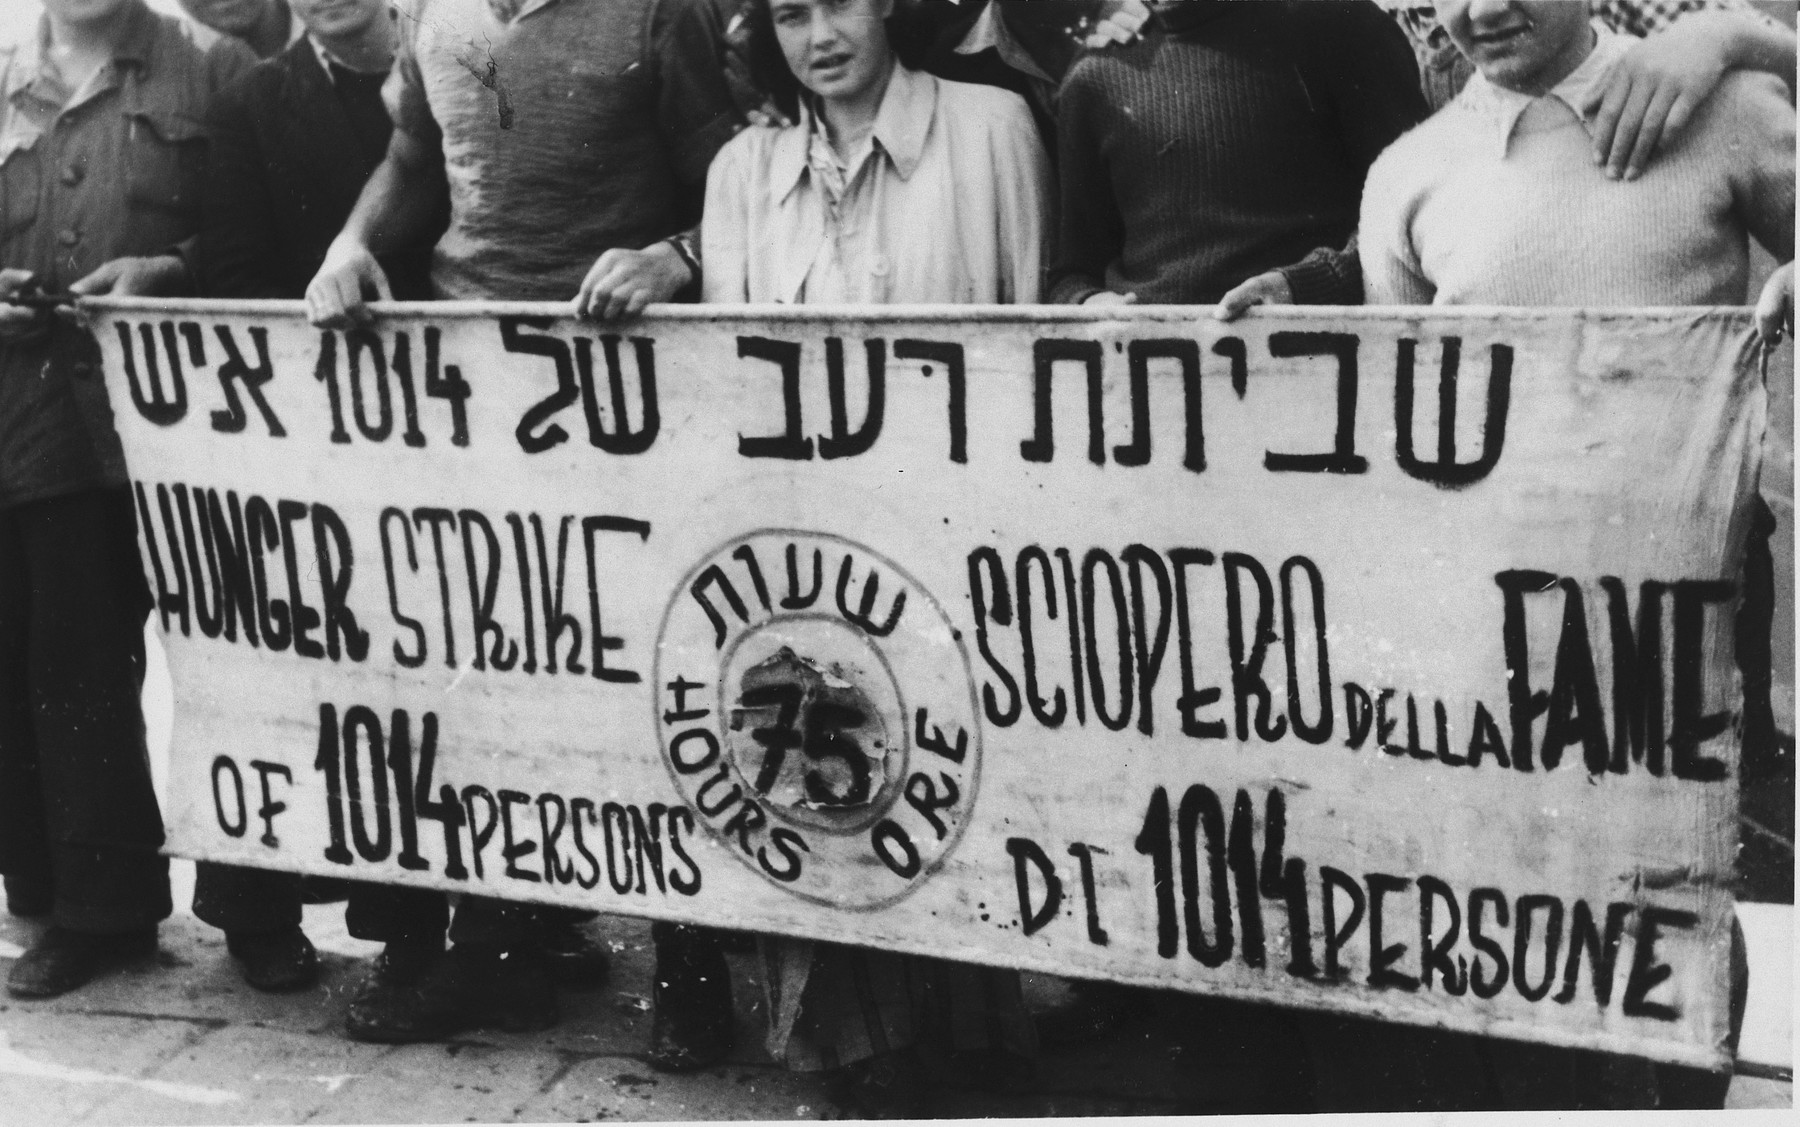 Jewish DPs in La Spezia harbor are gathered behind a banner announcing their hunger strike to protest British immigration policy in Palestine.